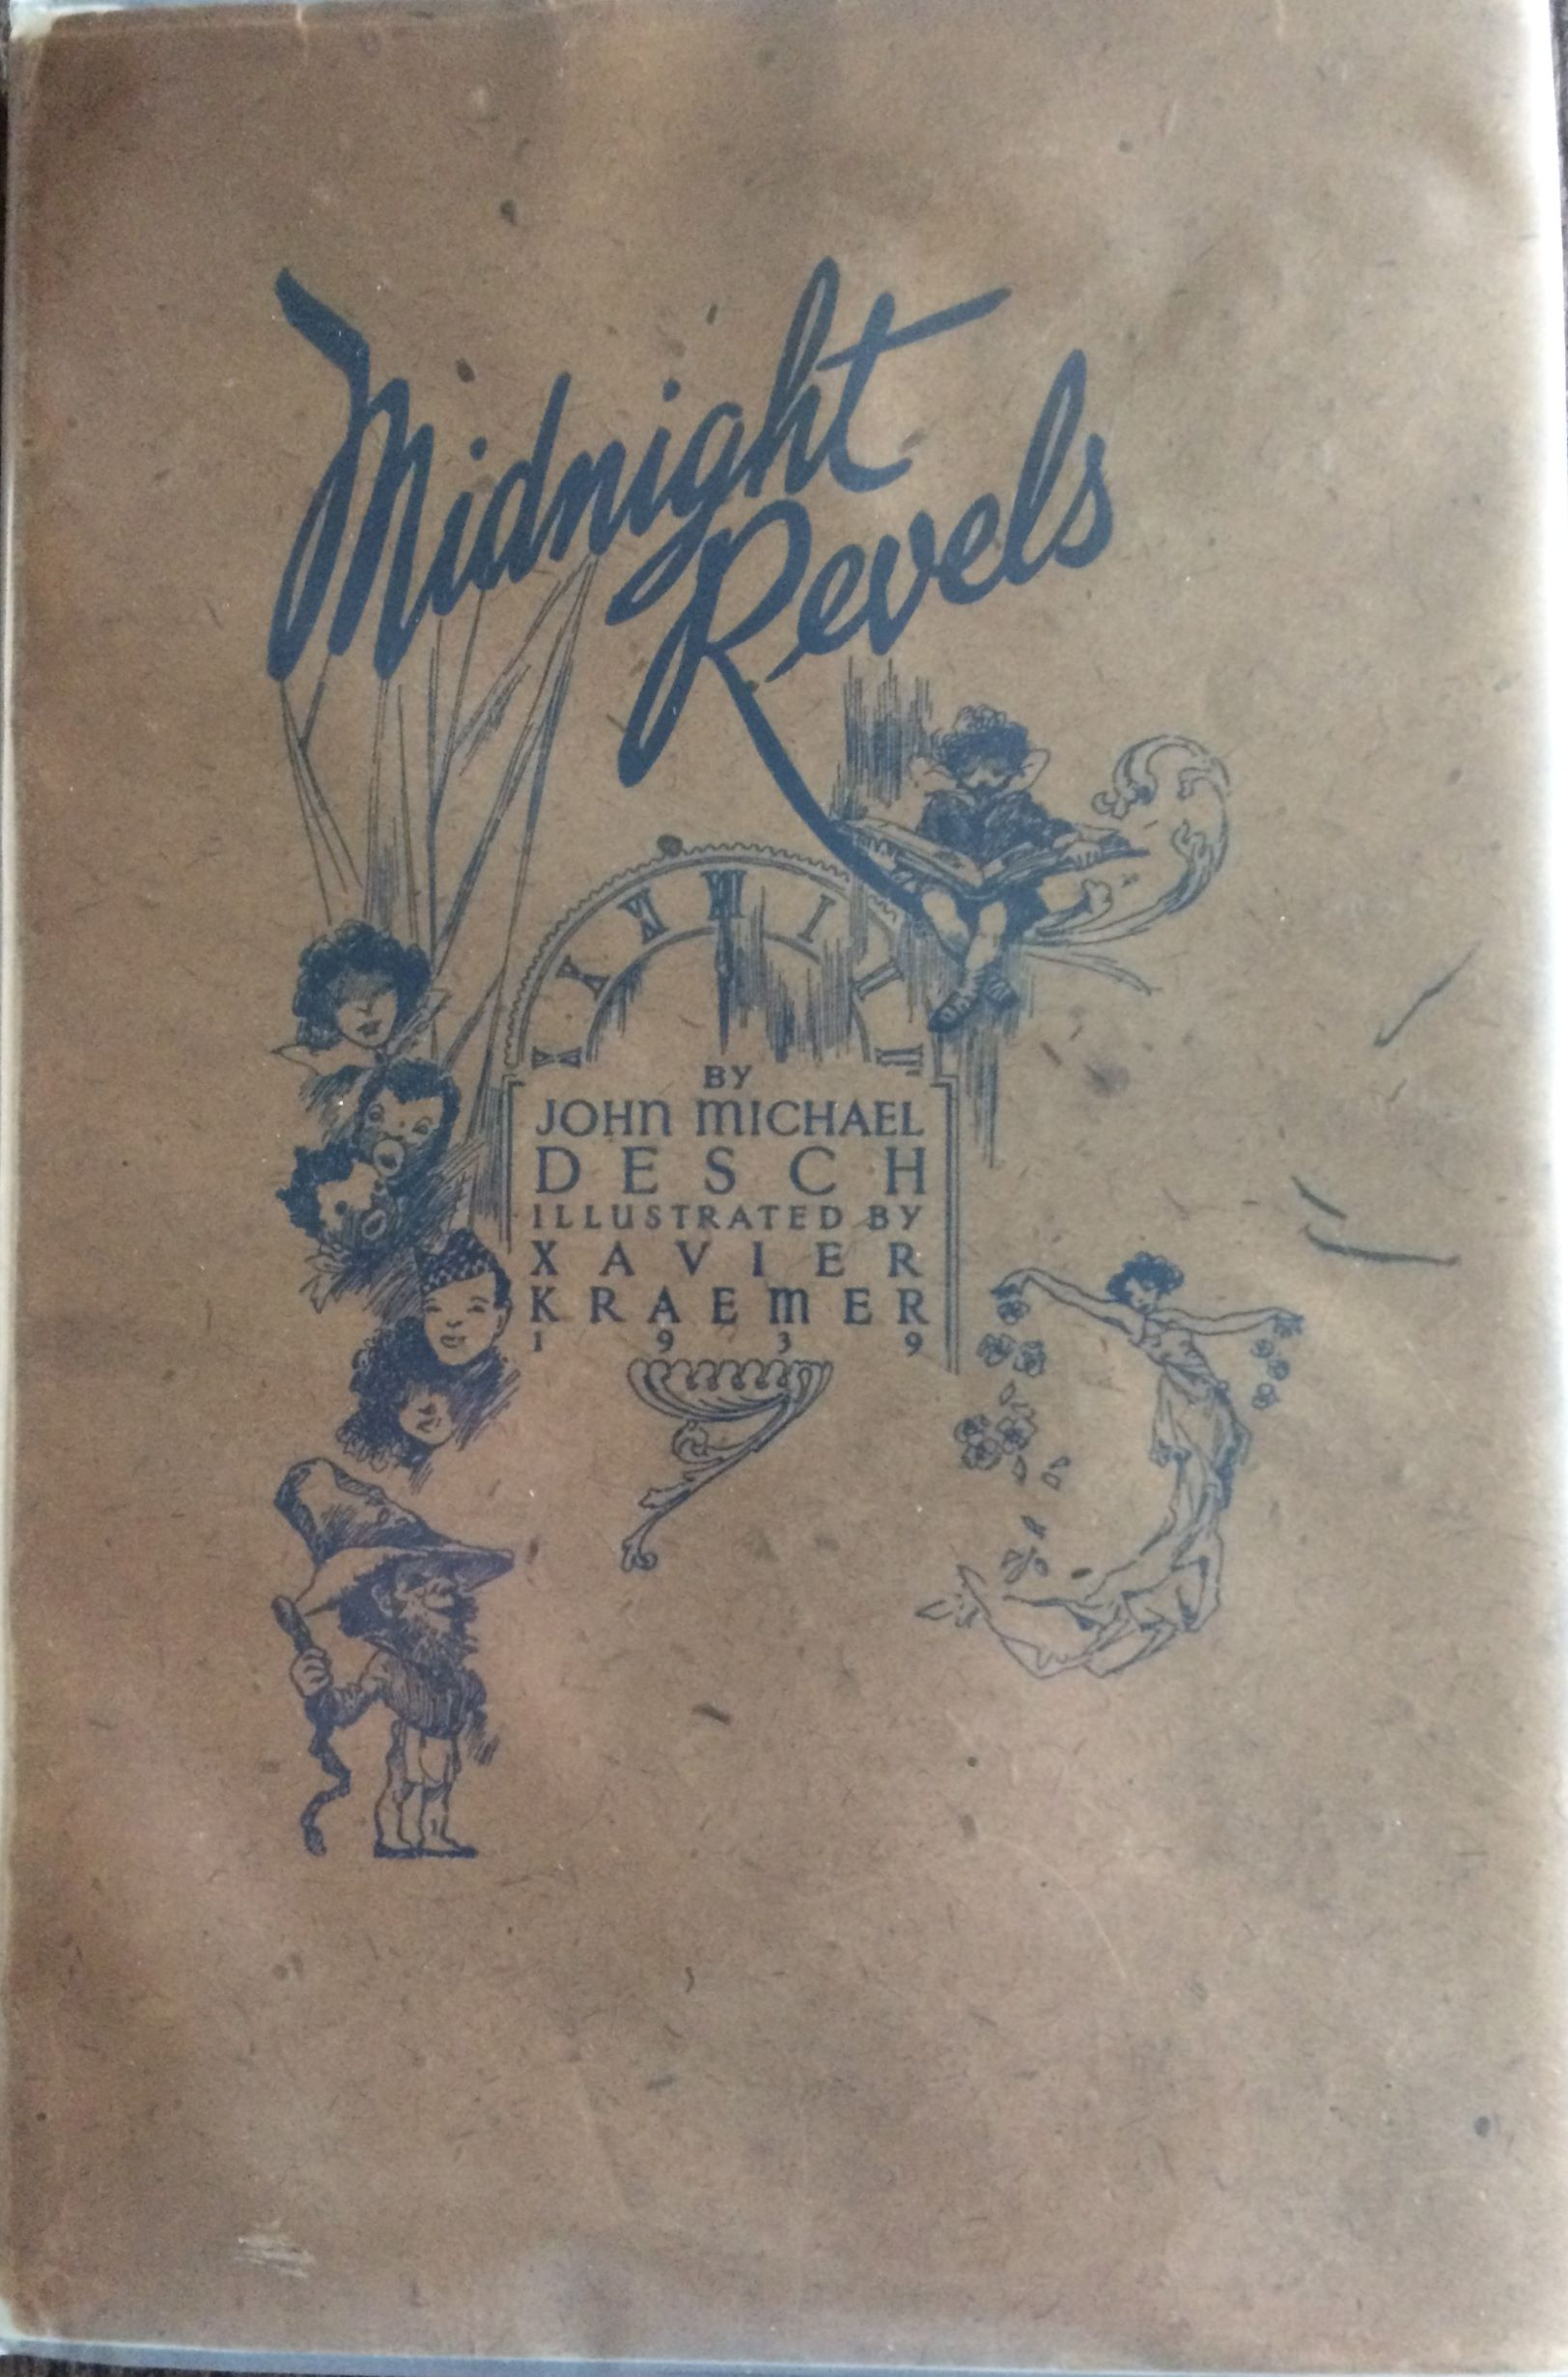 Image for Midnight Revels. (Inscribed by author to the Illustrator)  Illustrated by Xavier Kraemer.